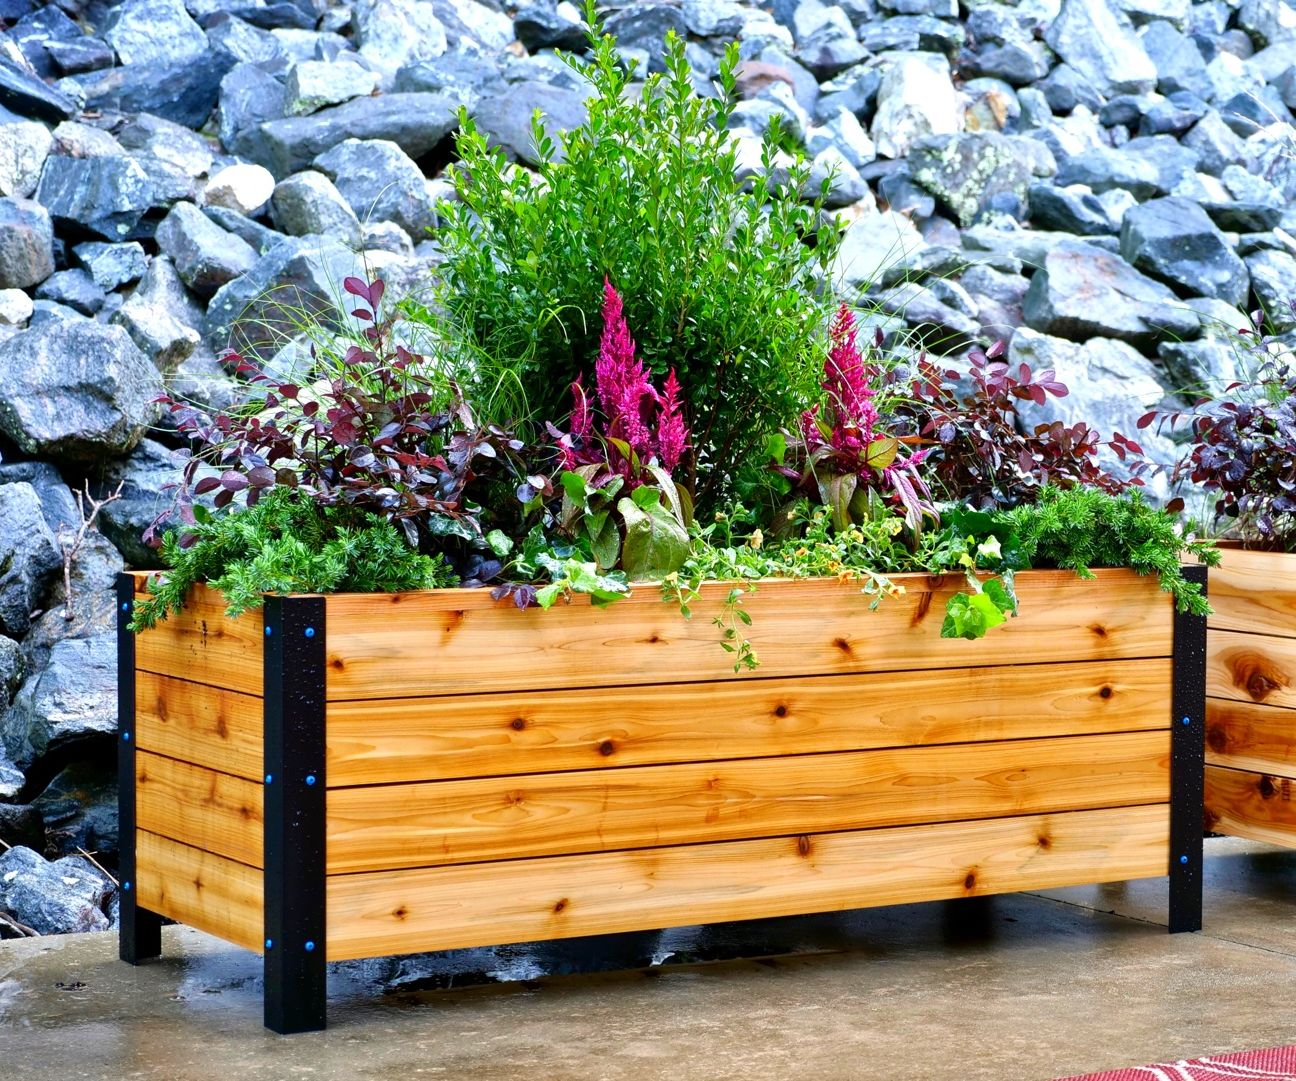 DIY Modern Raised Planter Box // How To Build